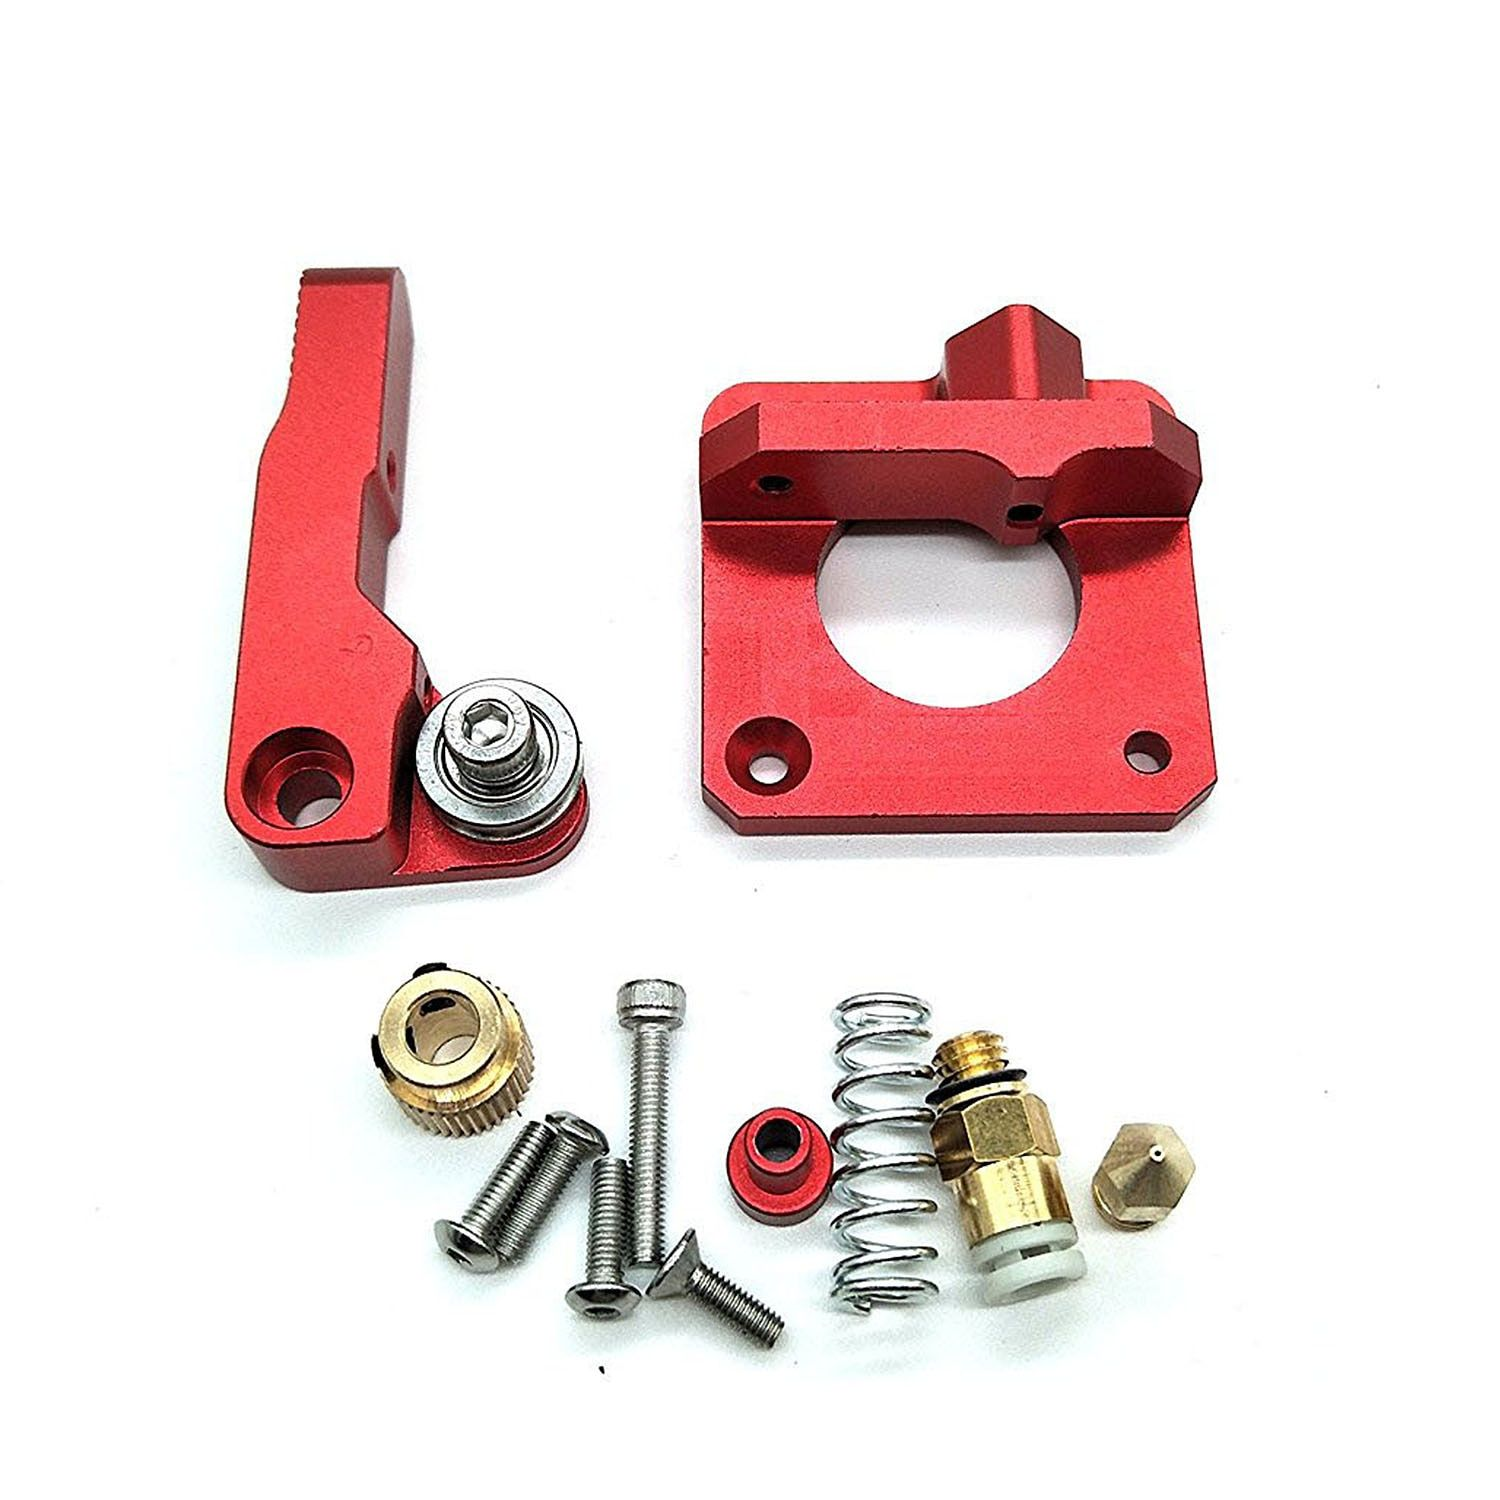 Affordable CR-10 Extruder Upgraded Replacement, Aluminum MK8 Drive Feed 3D Printer Extruders for Creality CR-10, CR-10S, CR-10